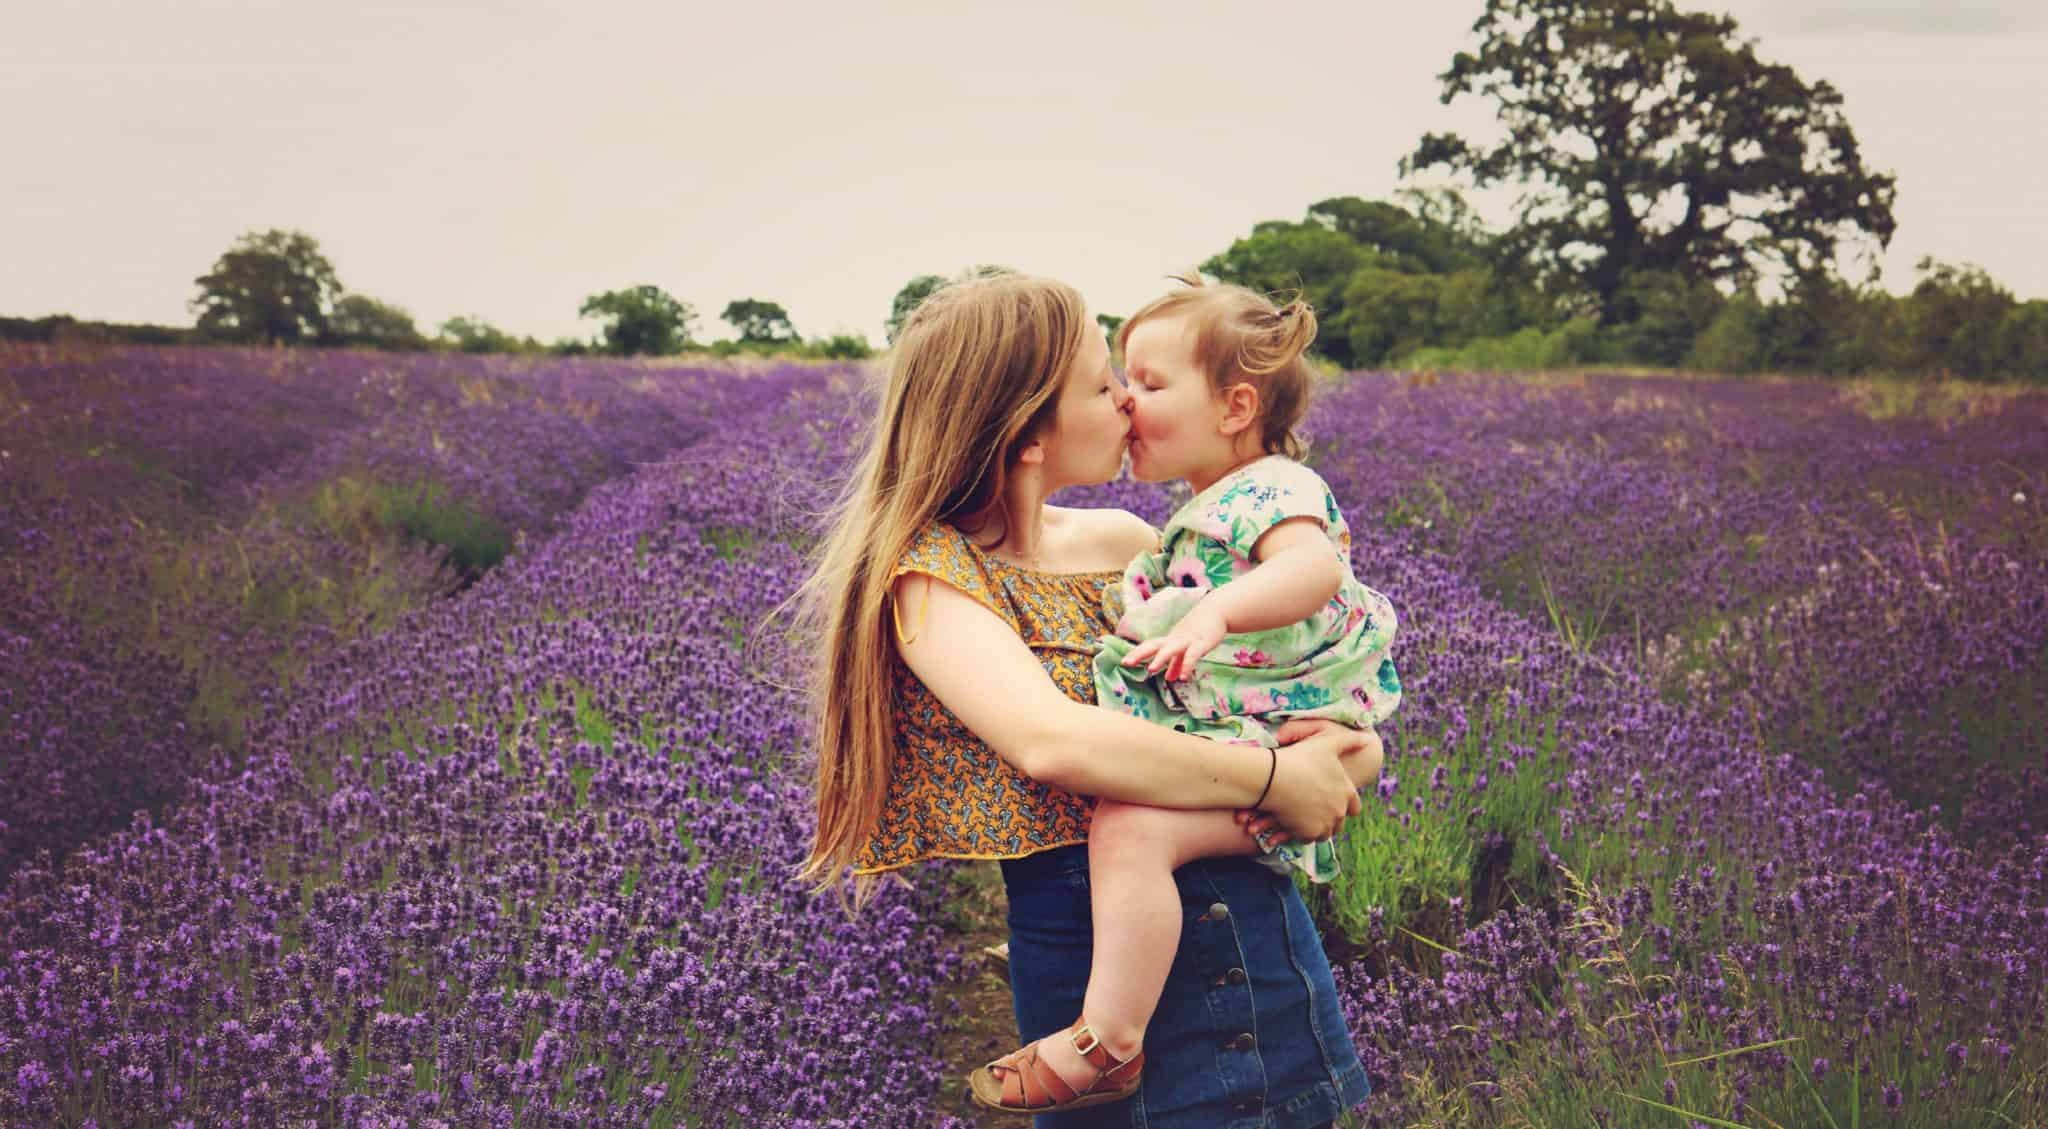 Sisters in a field of lavender print on wood made by WhiteWall